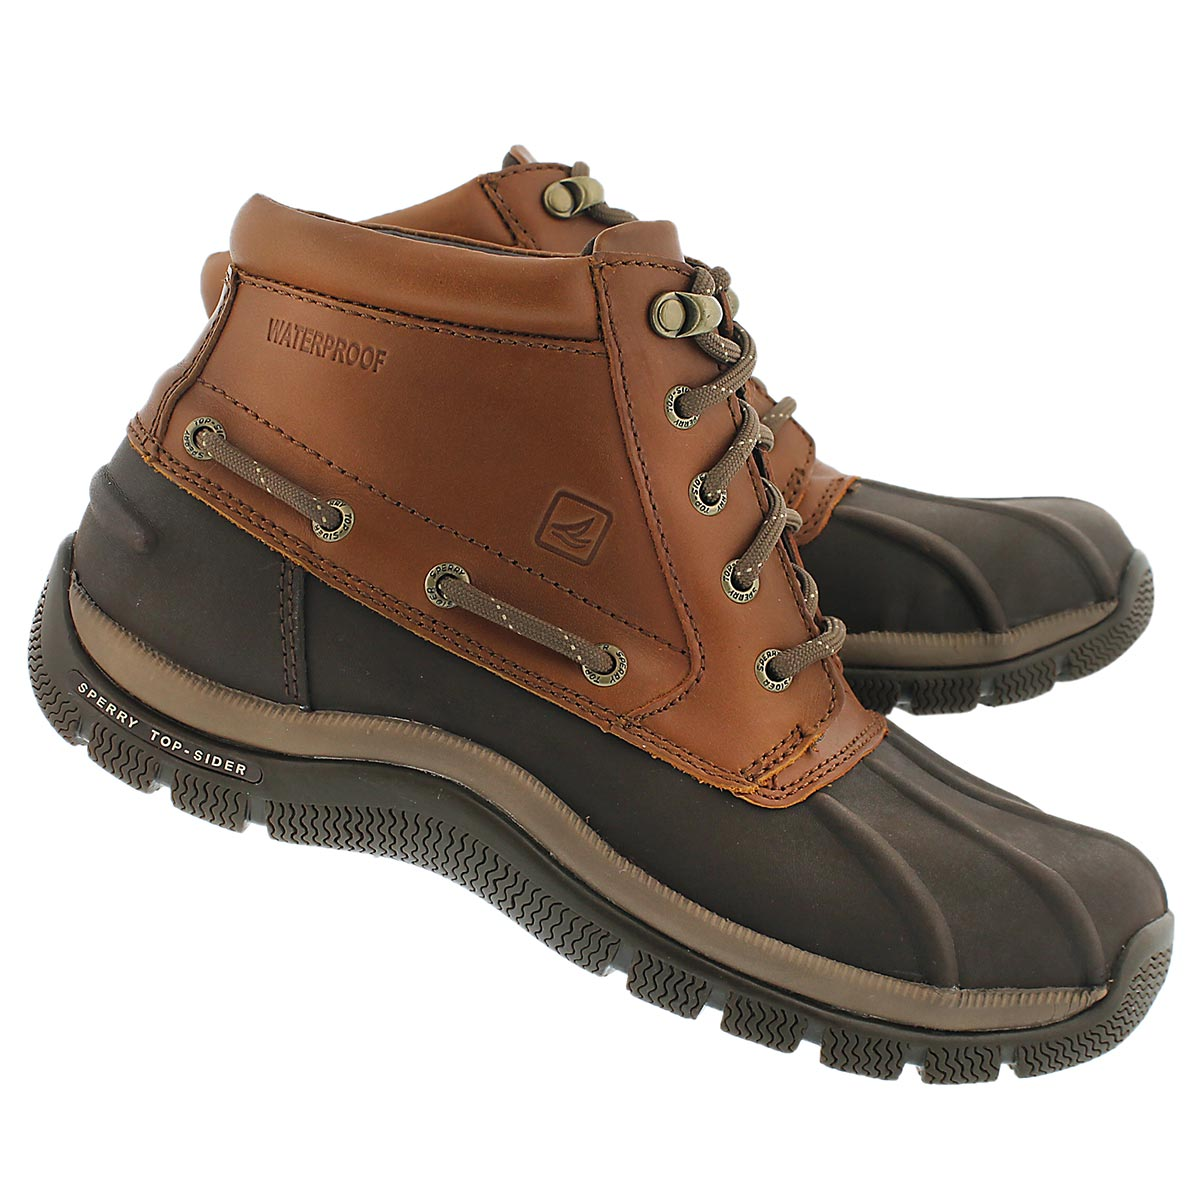 Mns Glacier tan/brown winter boot